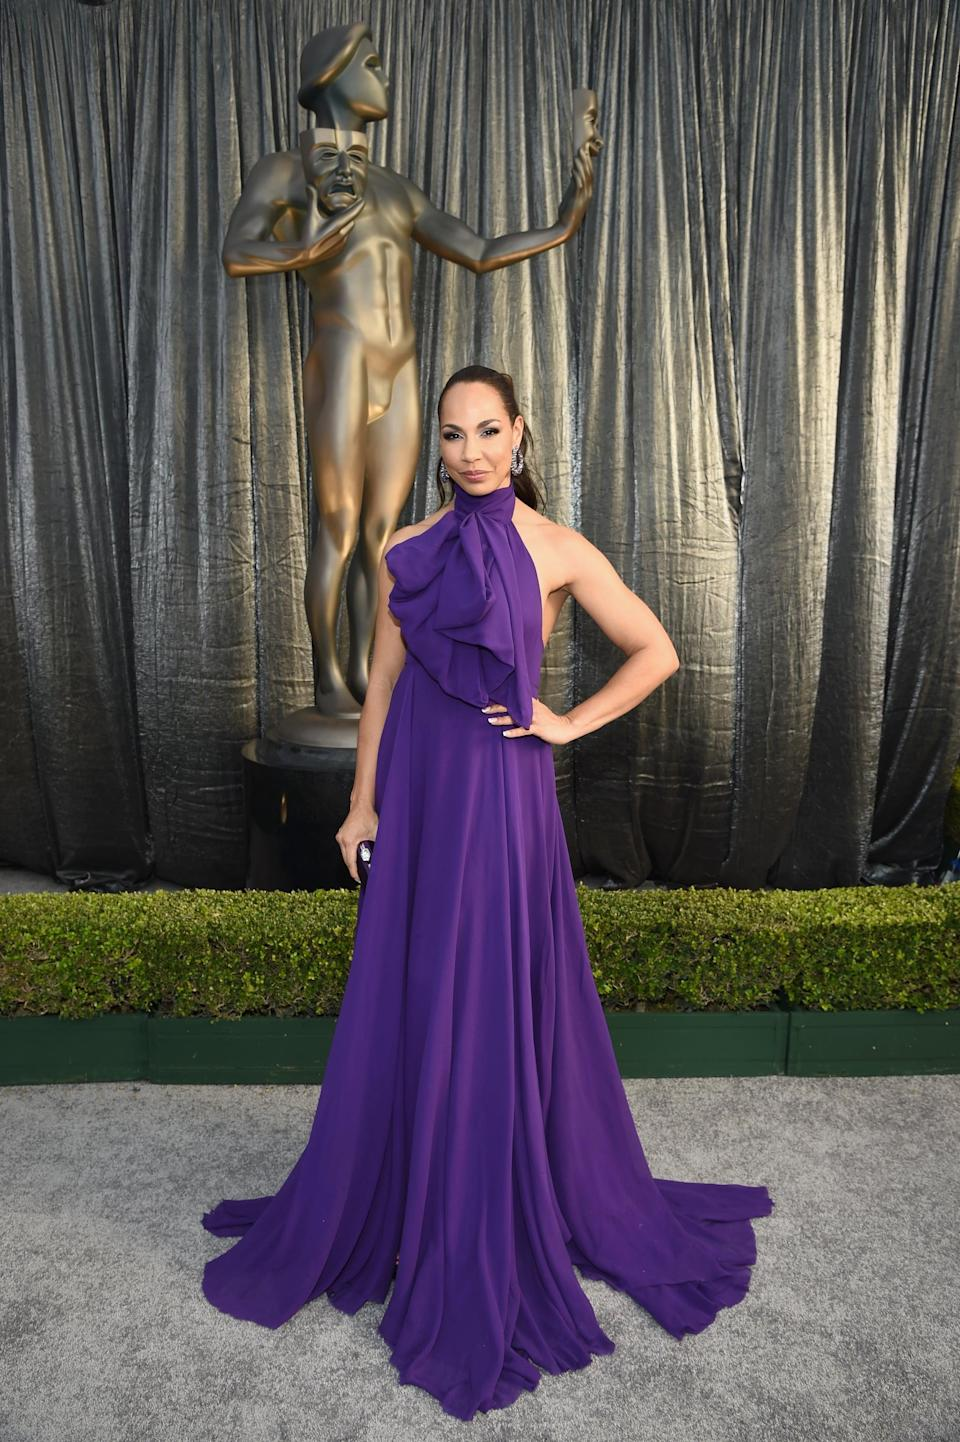 <p>Wearing a purple Redemption gown and Stuart Weitzman shoes.</p>